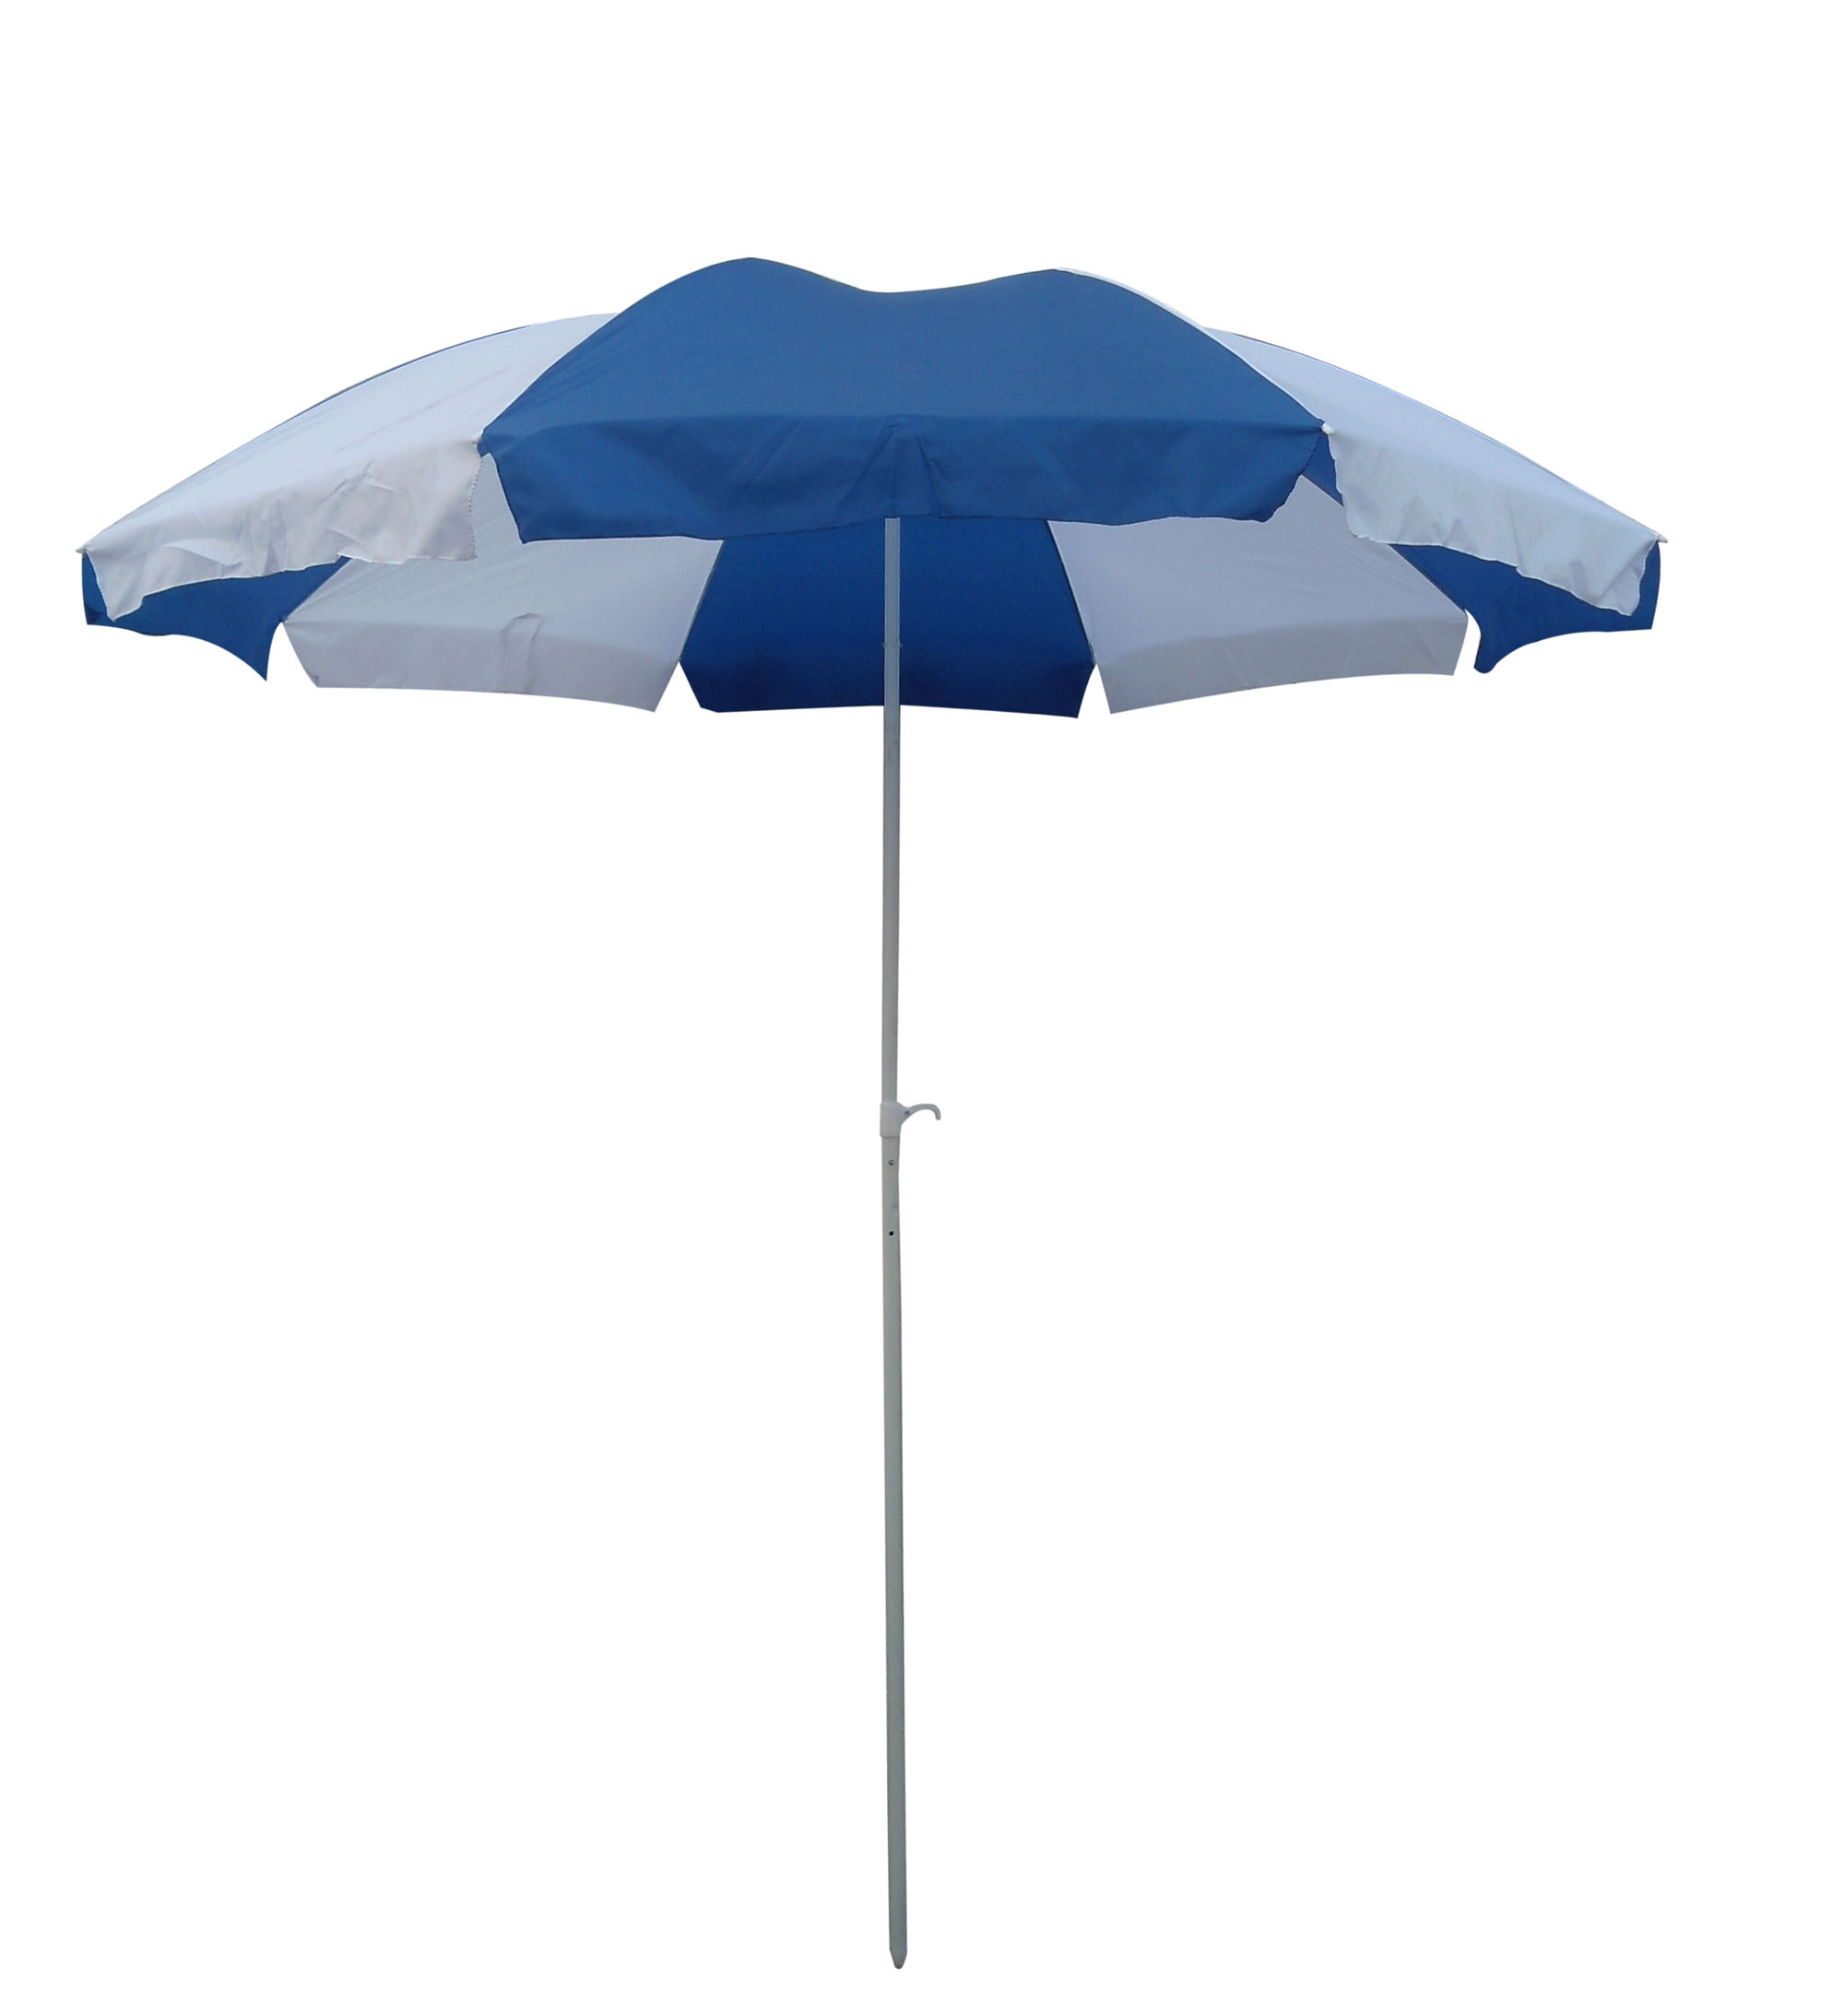 patio stand umbrella seller market cheap sun best outdoor garden standing cantilever decoration free sale table prices unique large base replacement umbrellas parasol offset giant